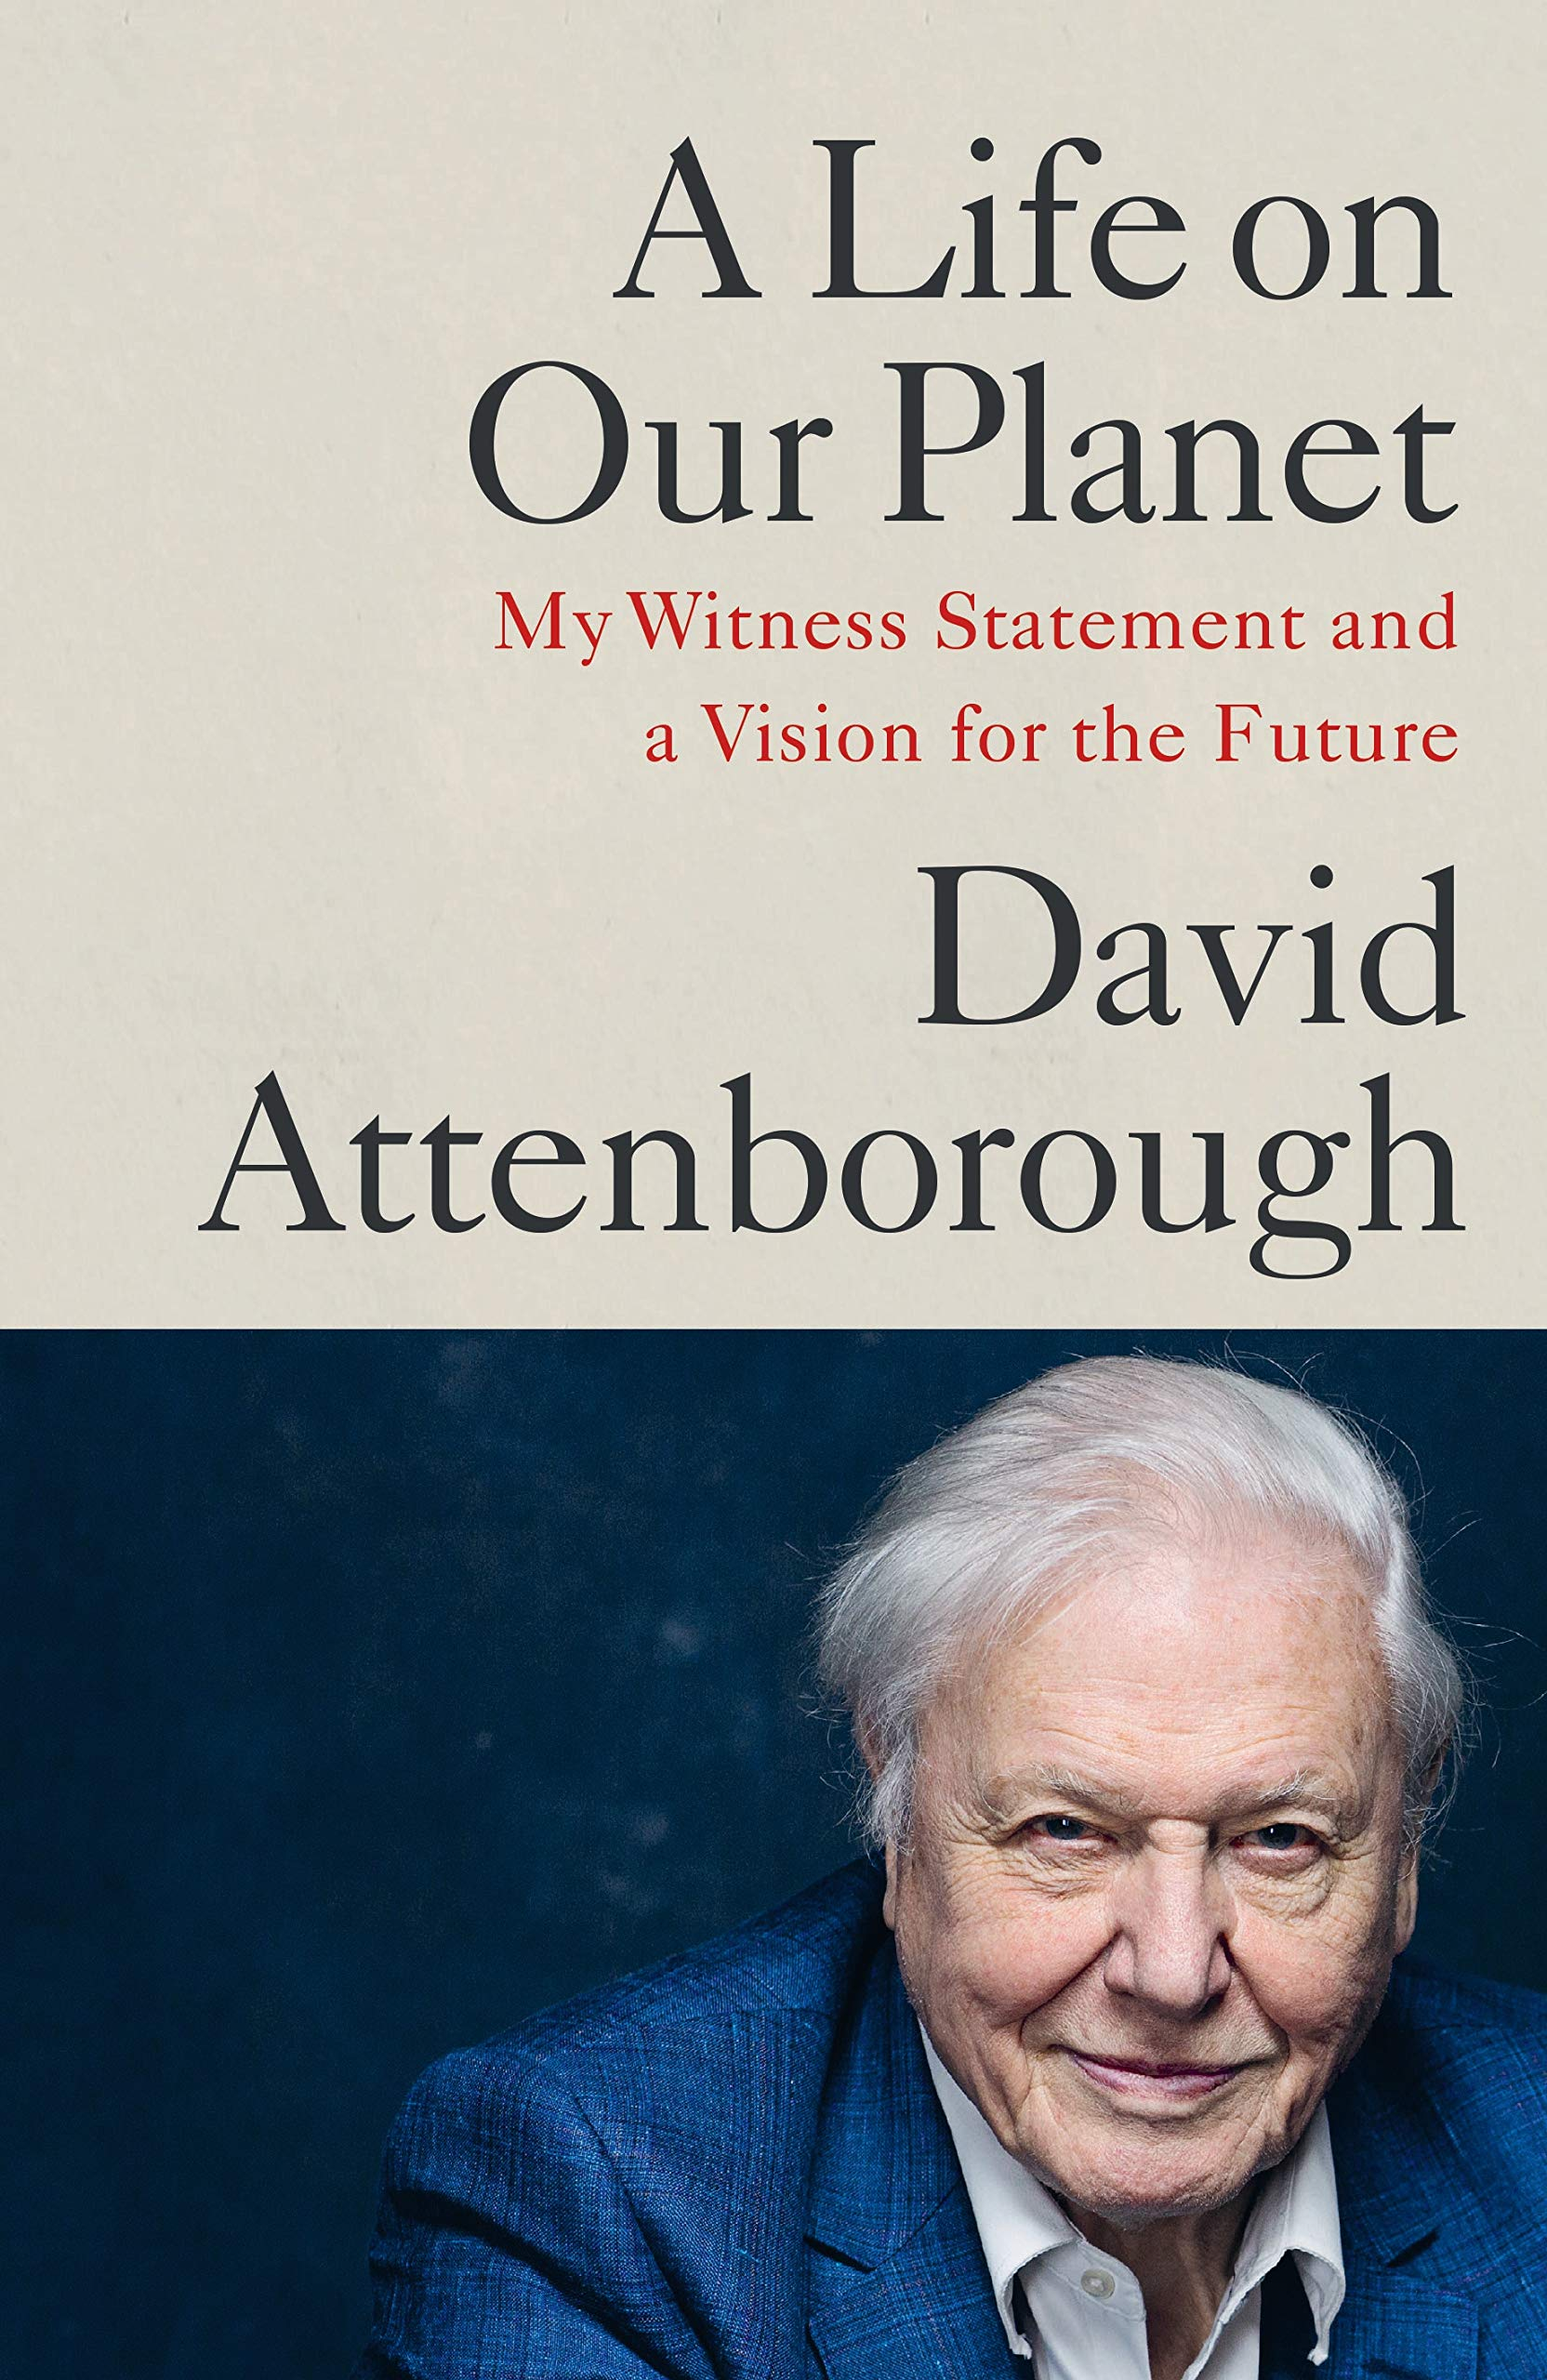 A Life on Our Planet: My Witness Statement and a Vision for the Future:  Amazon.co.uk: Attenborough, David: 9781529108279: Books